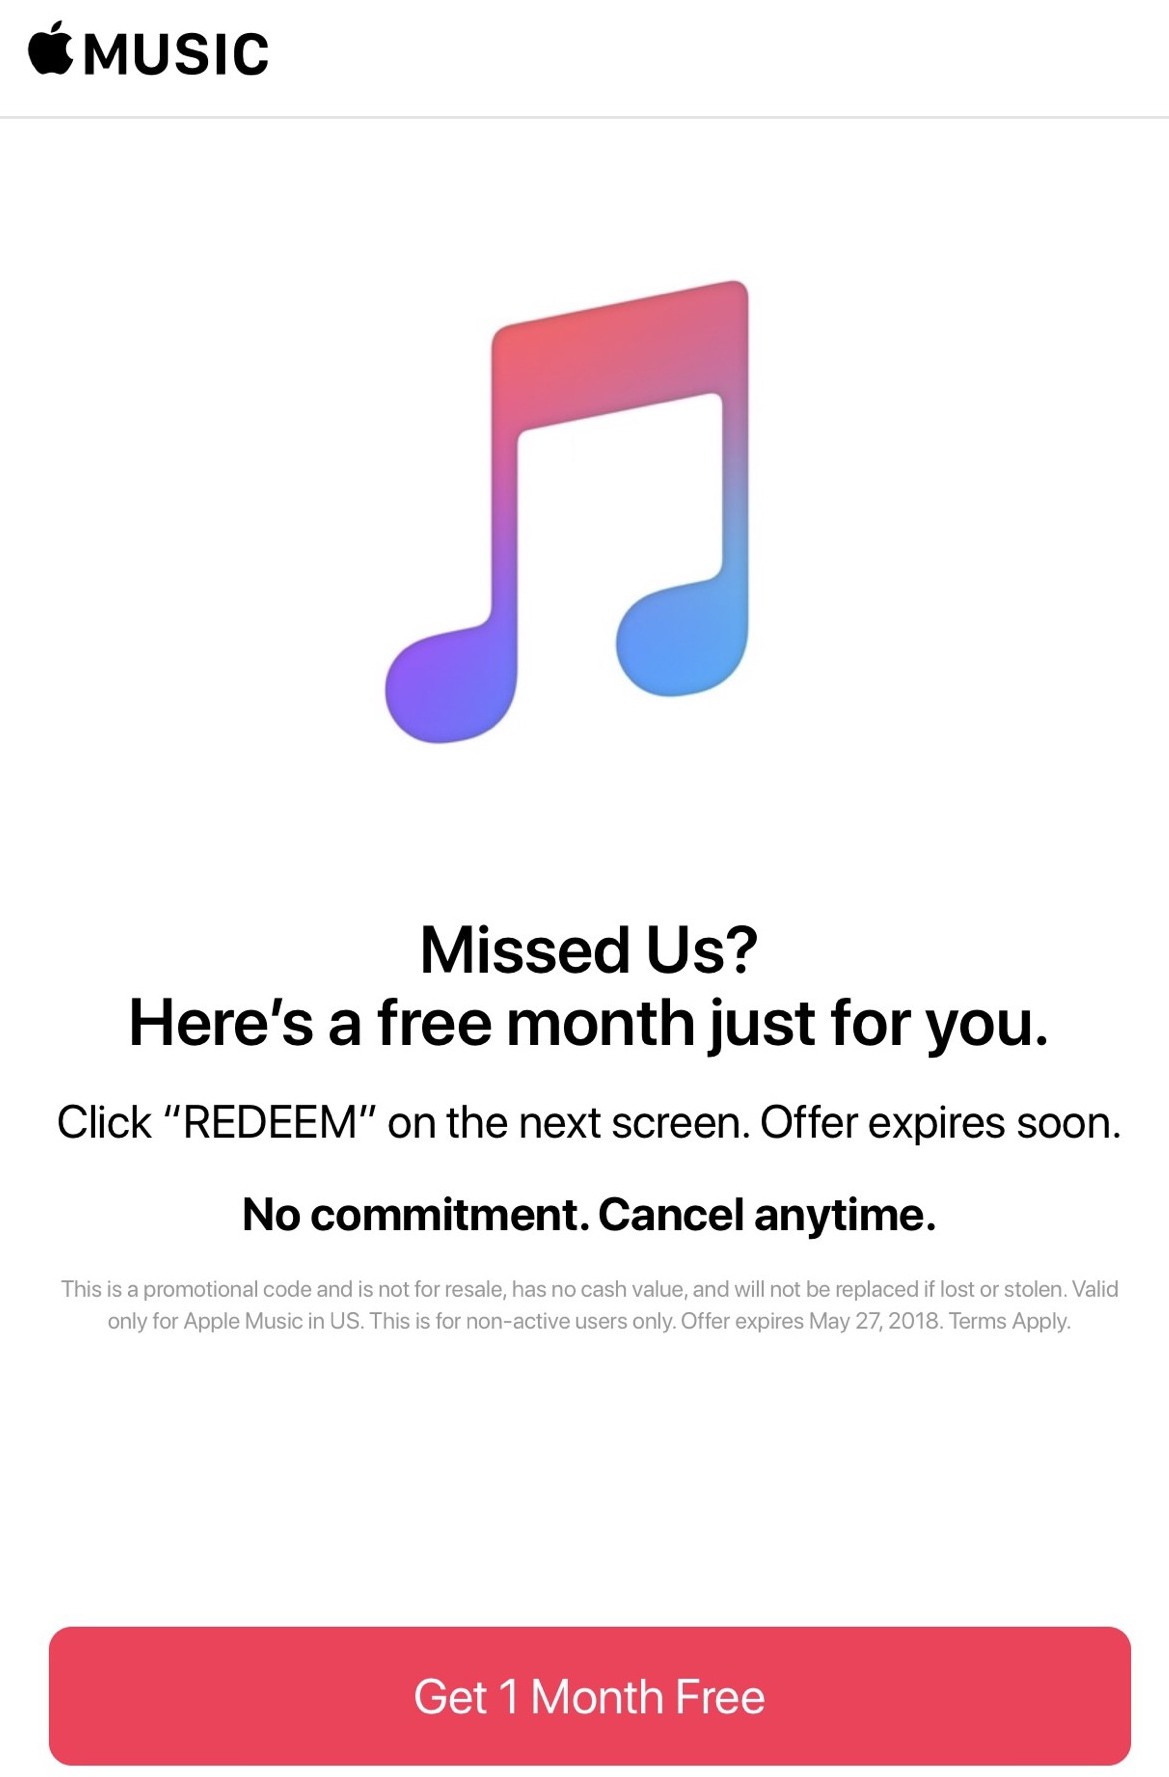 Apple Music offering extra free month to trial users who